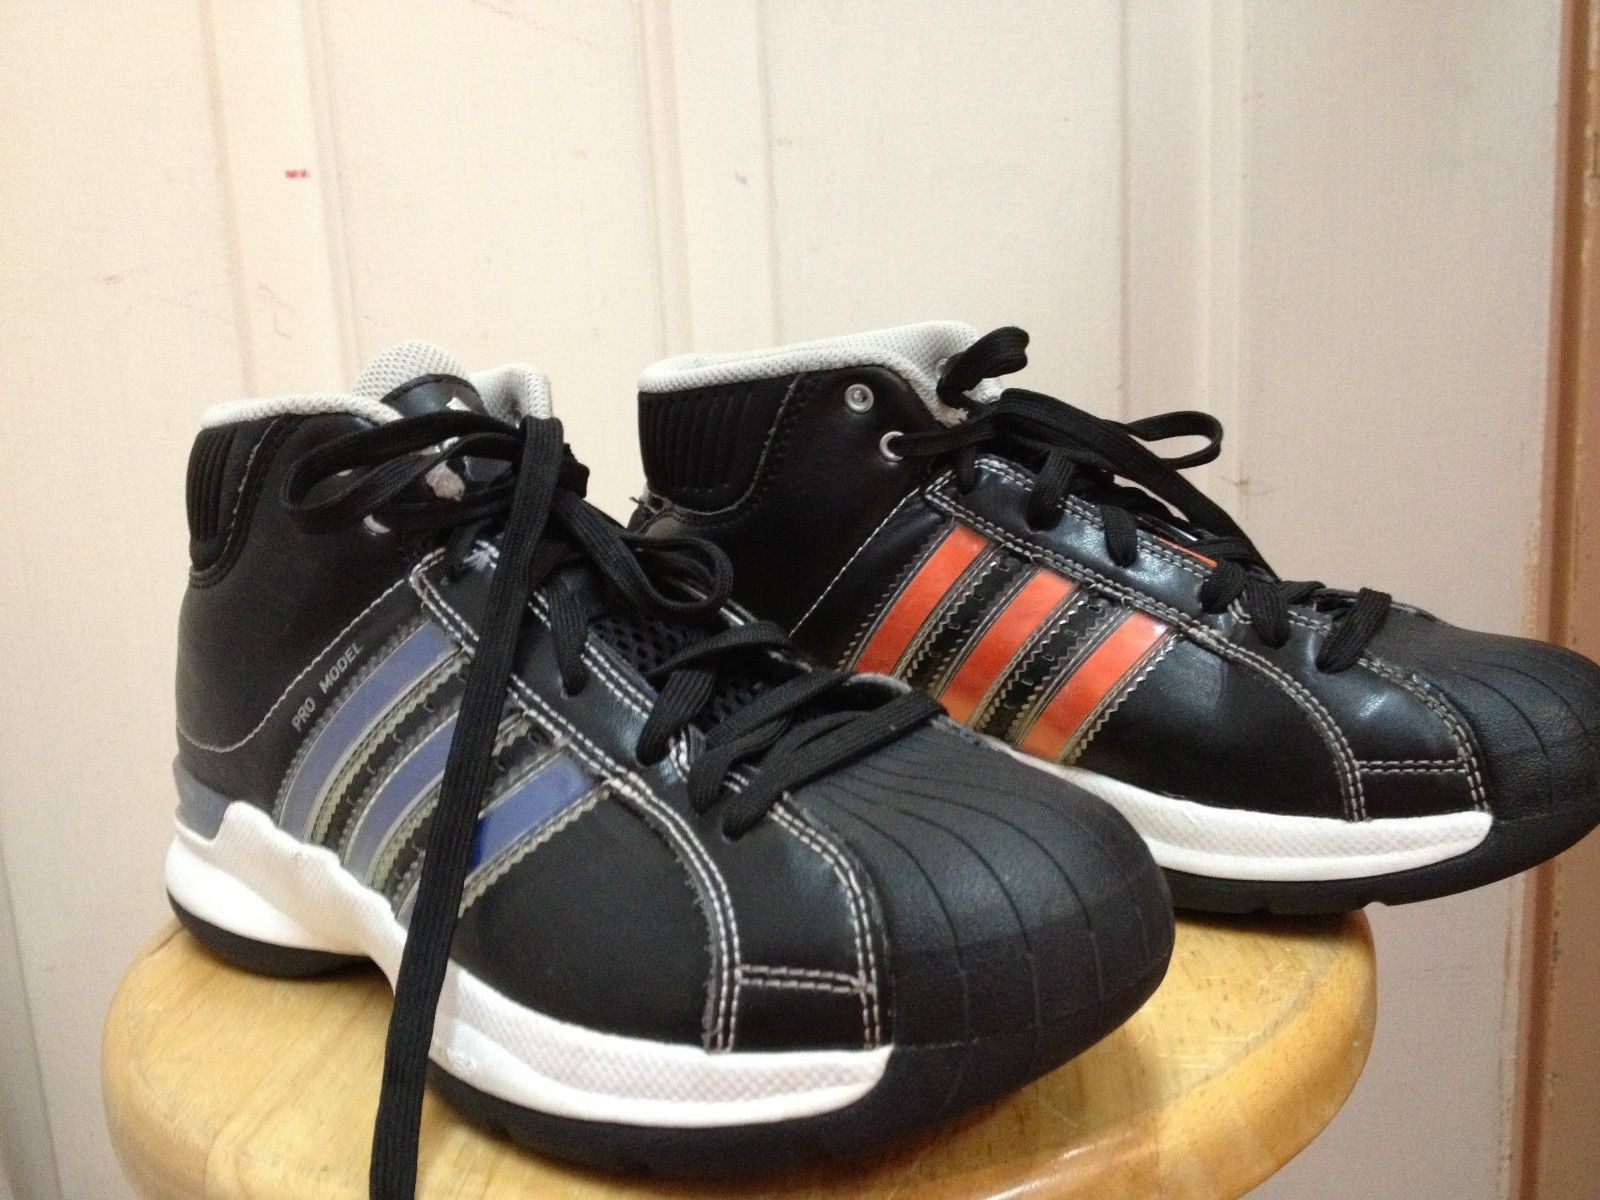 b0d0f819a8e ADIDAS PRO MODEL shoes CHANGE STRIPES sneakers BLACK High Tops 5.5 GOLF  BACKPACK